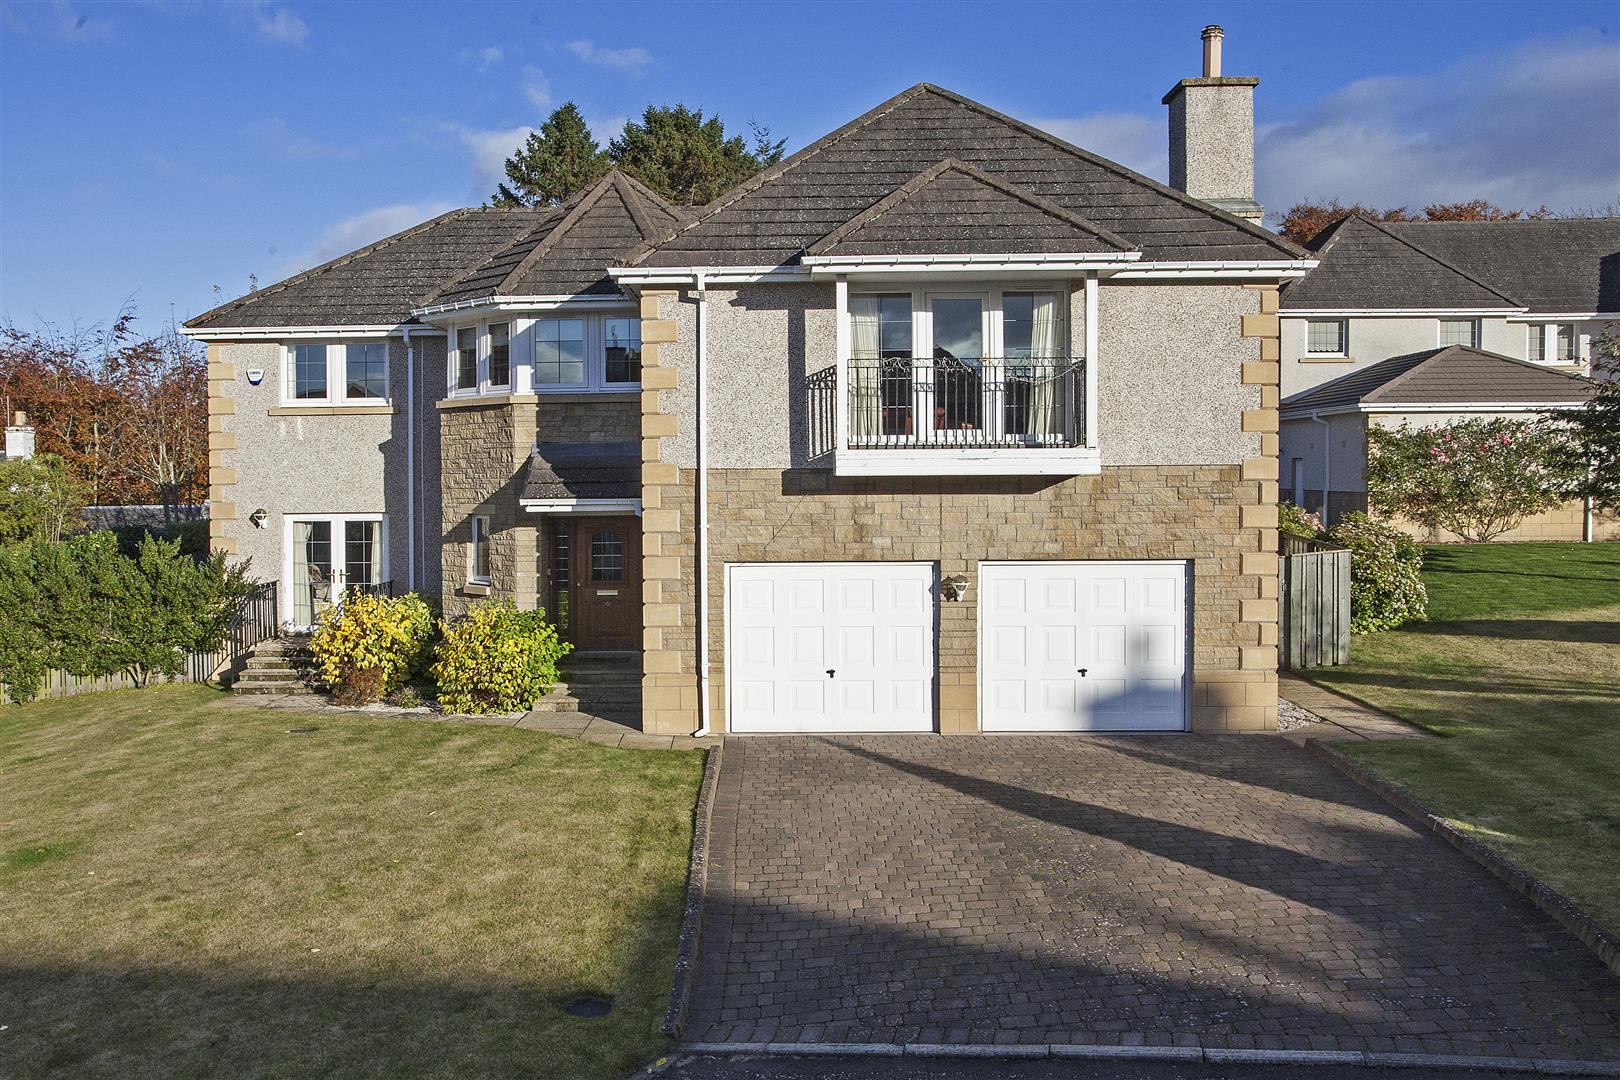 5 bedroom house detached for sale in abernethy next for Abernathy house